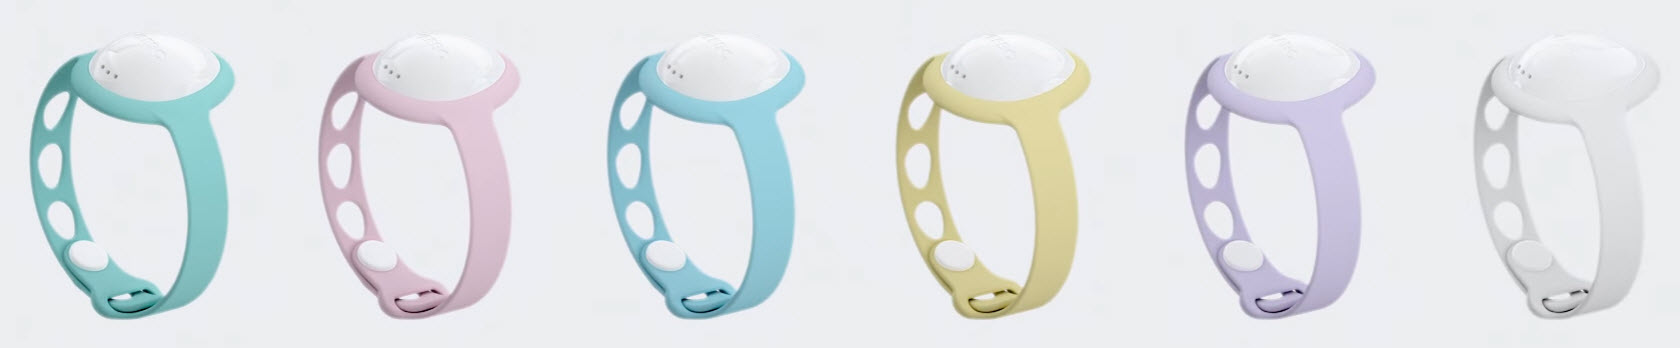 neebo baby wearable monitor color options